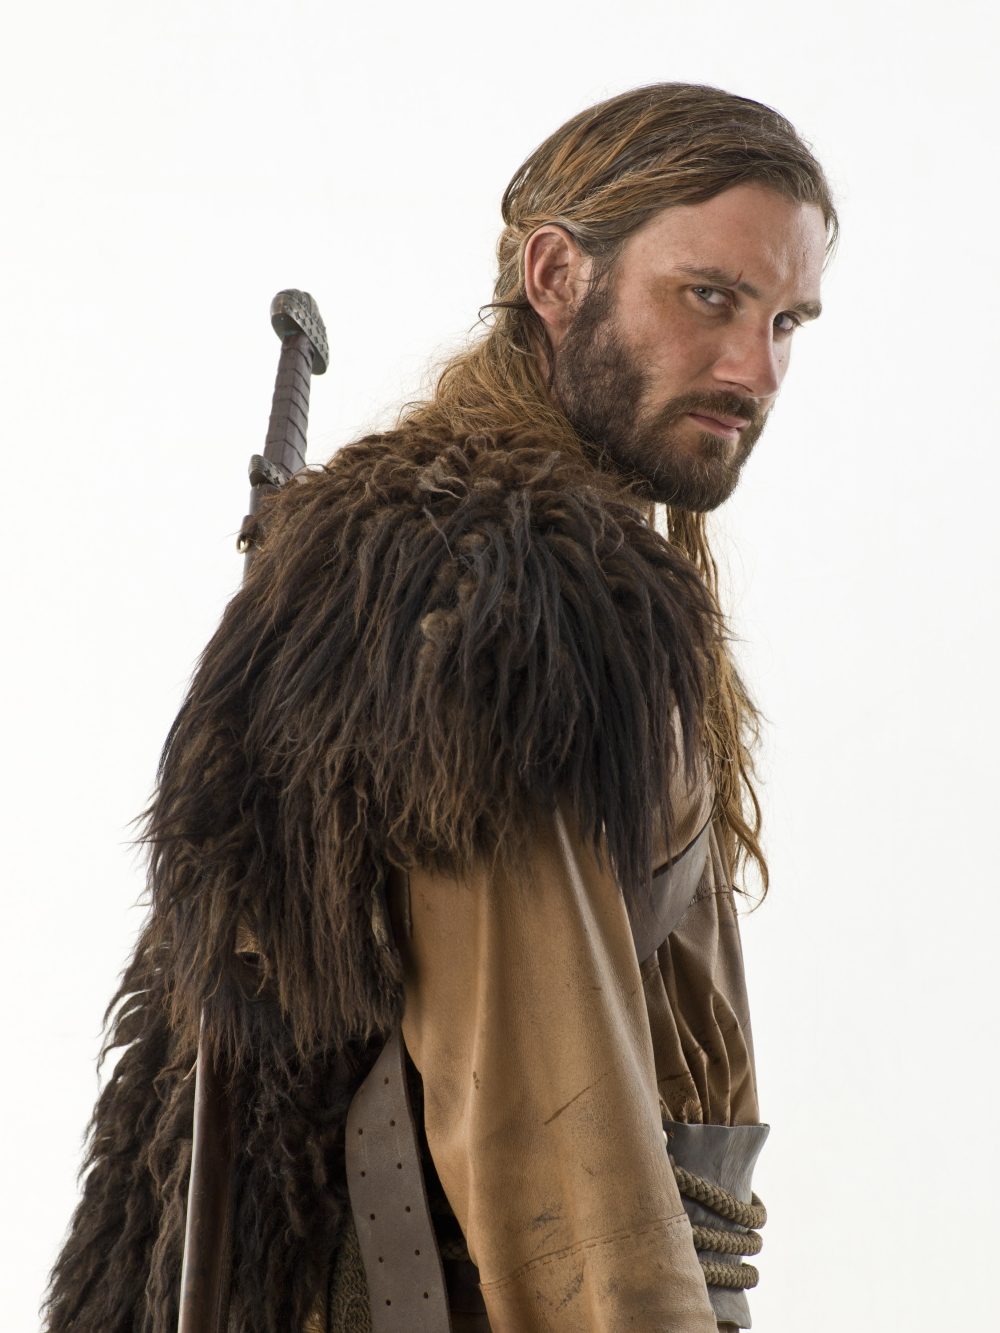 Vikings Promo • Rollo - Vikings (TV Series) Photo